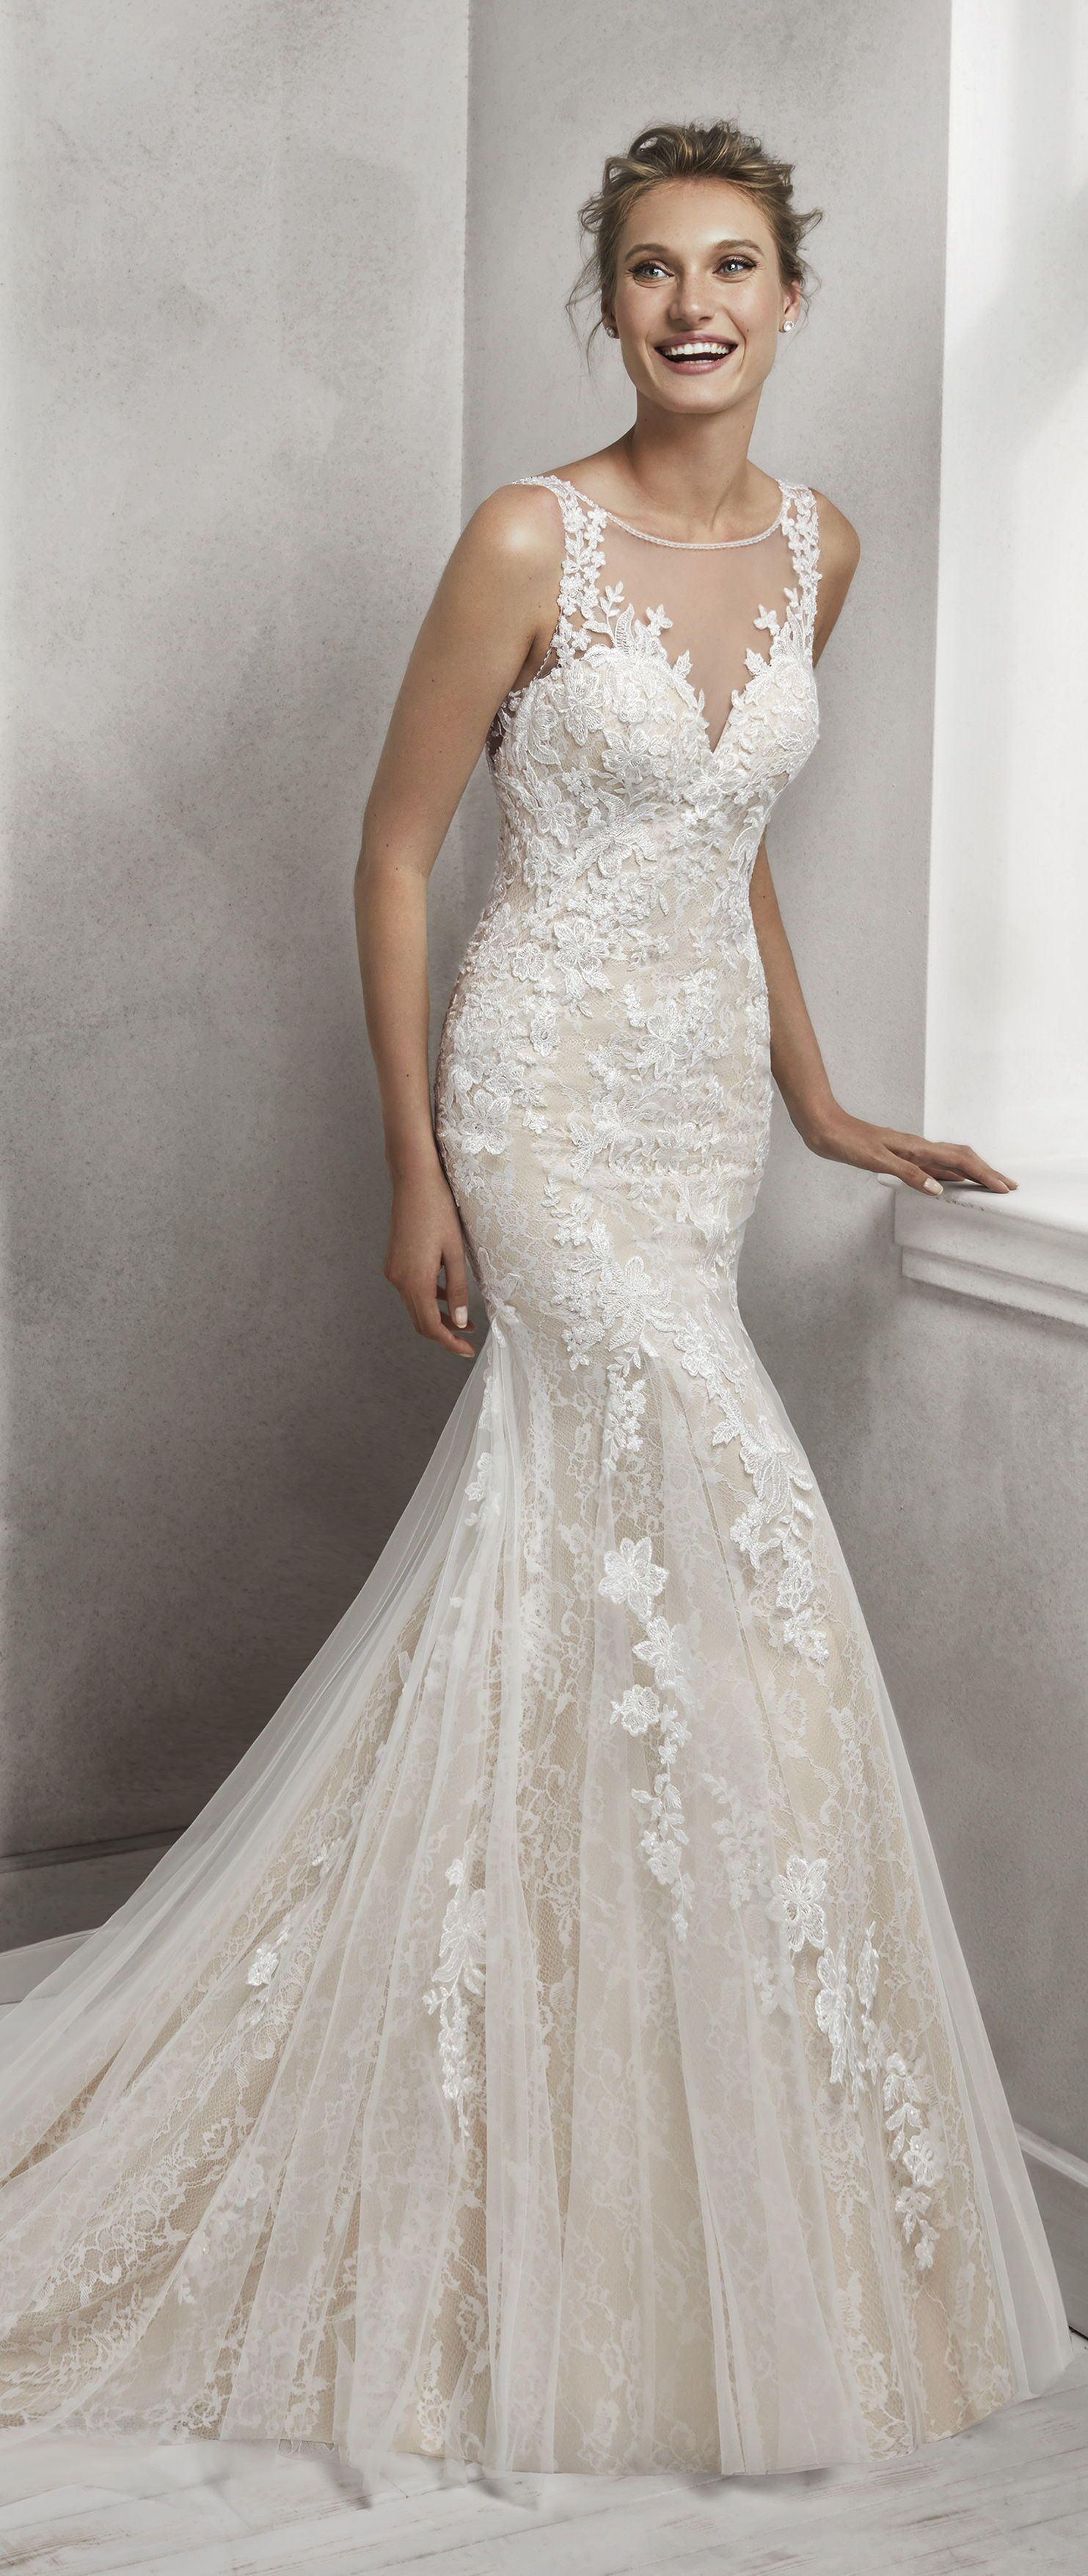 f2a9cd0c9d5d2 [ #ad ] Wedding Dress by Luna Novias. Hayden is a Mermaid-style lace bridal  gown with illusion neckline and low back, in nude and natural.